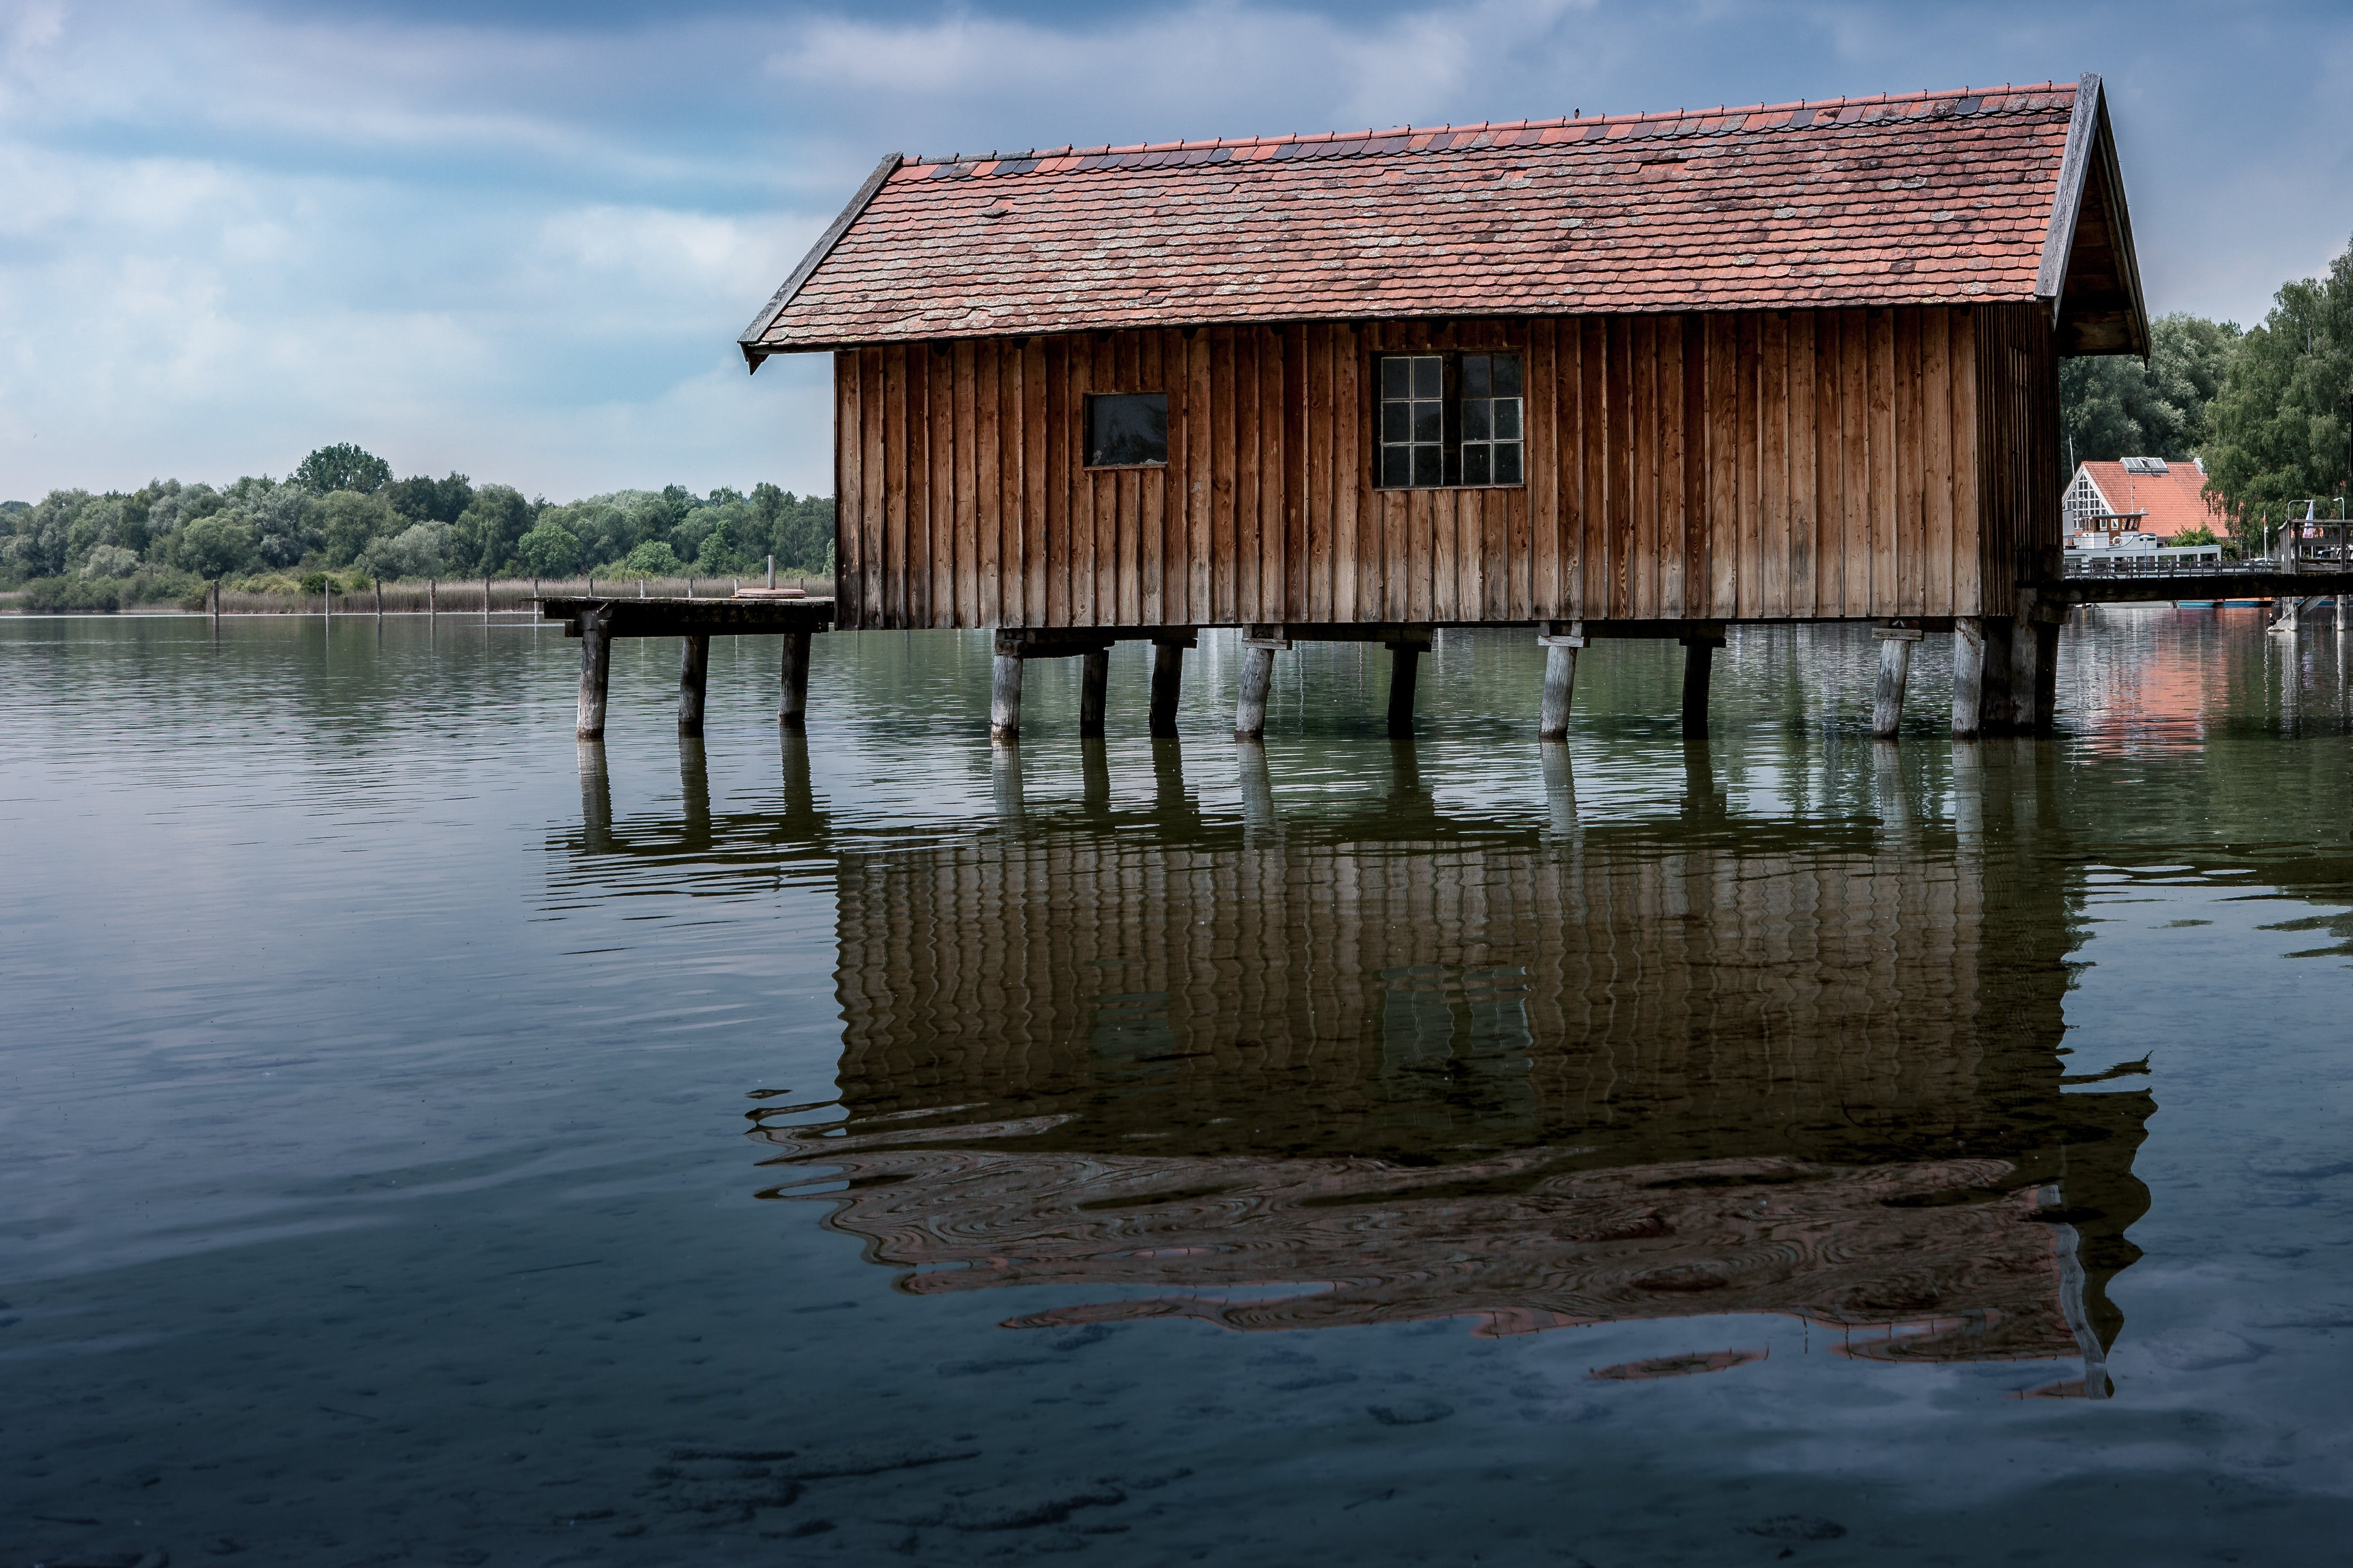 architecture, boathouse, bungalow